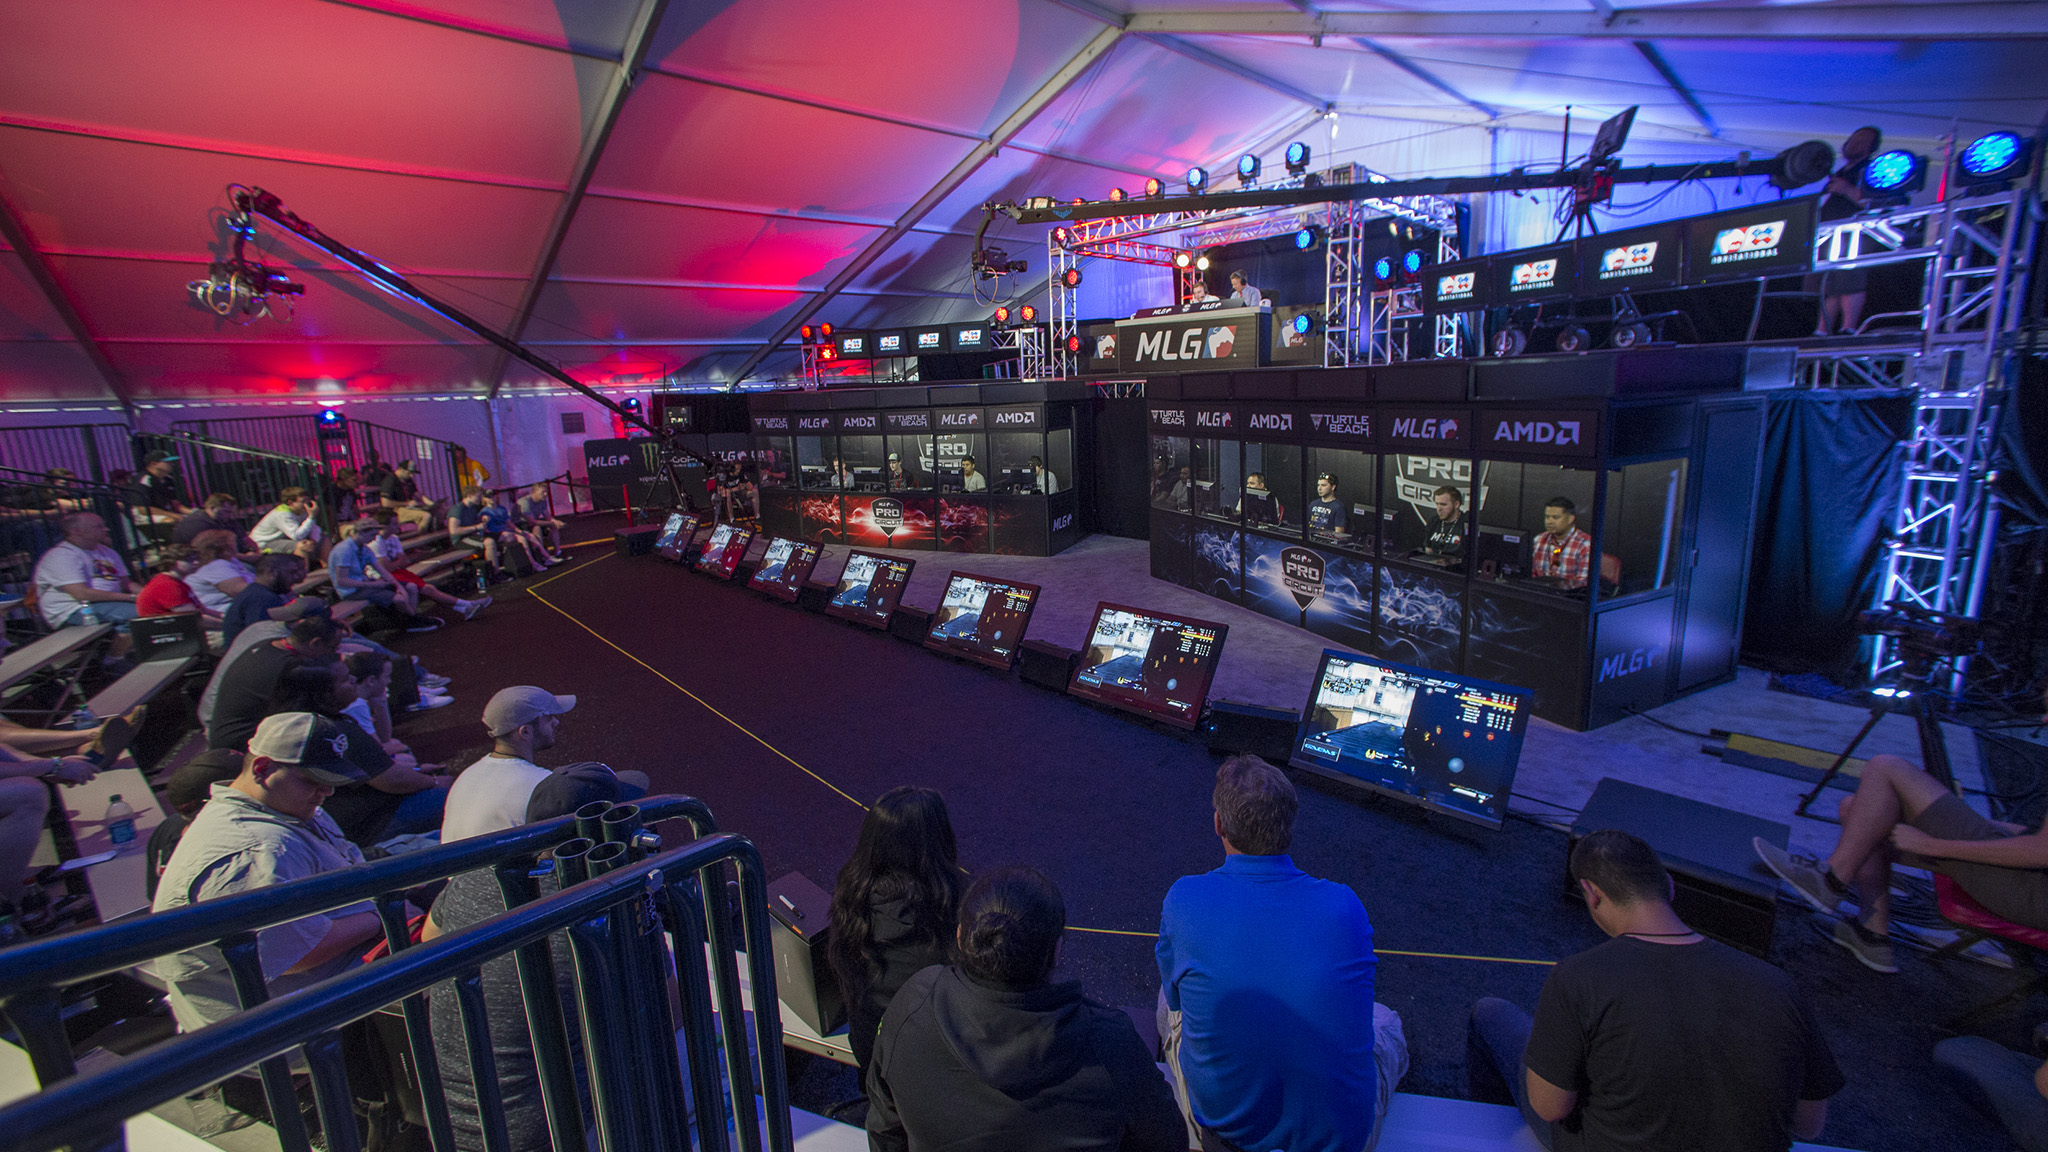 Following the success of the Major League Gaming Call of Duty: Ghosts tournament at X Games Austin 2014, MLG will return for X Games Aspen 2015 to host a Counter-Strike: Global Offensive event.